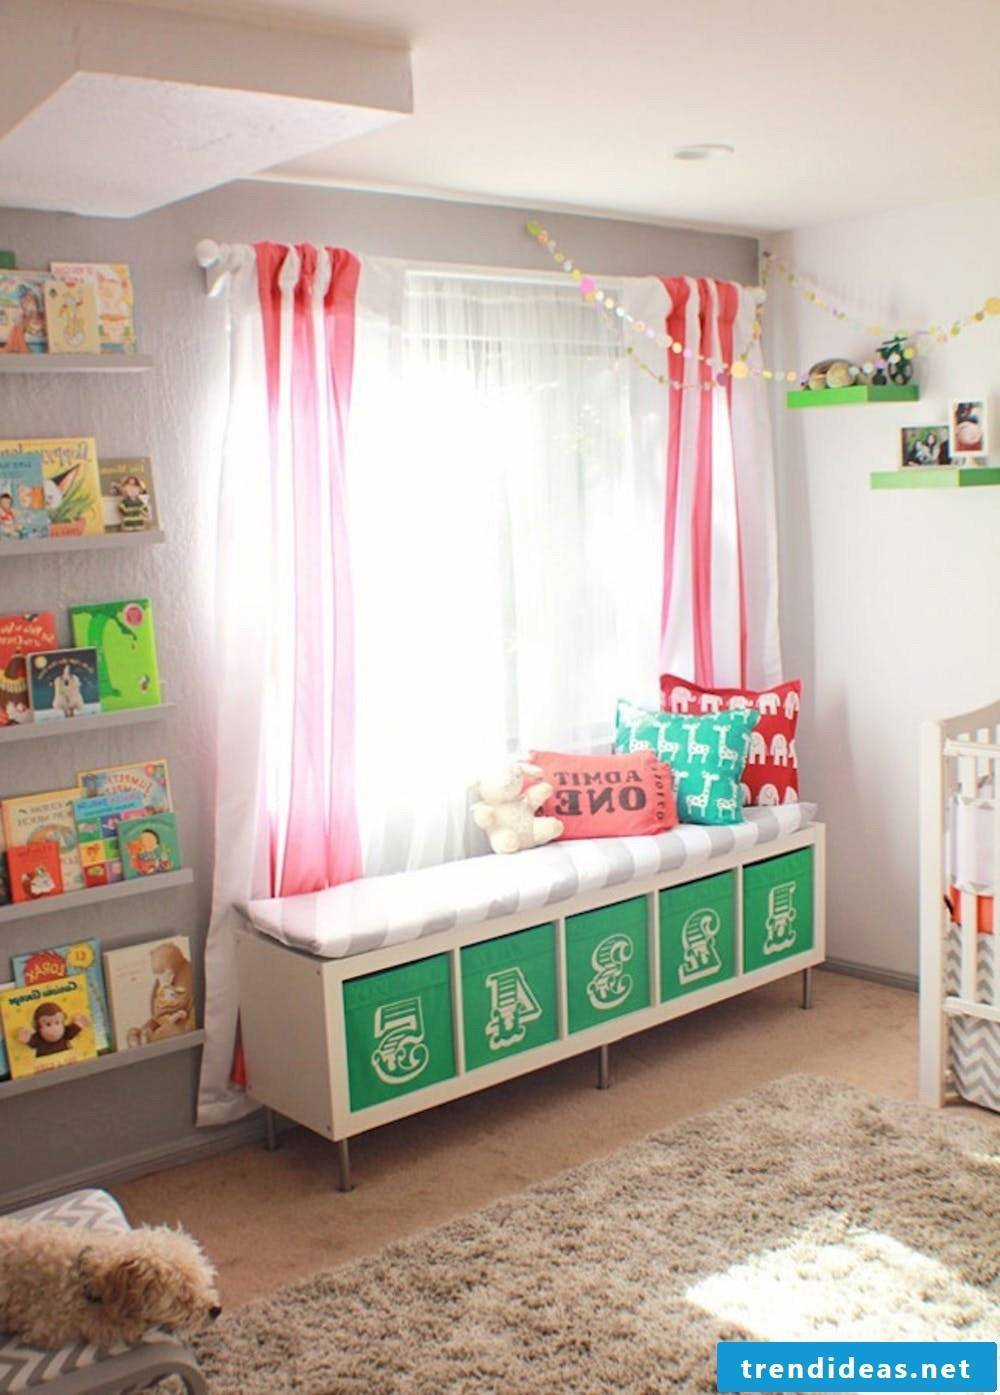 Full Child Room With Ikea 31 Ikea Hacks And Decor Concepts